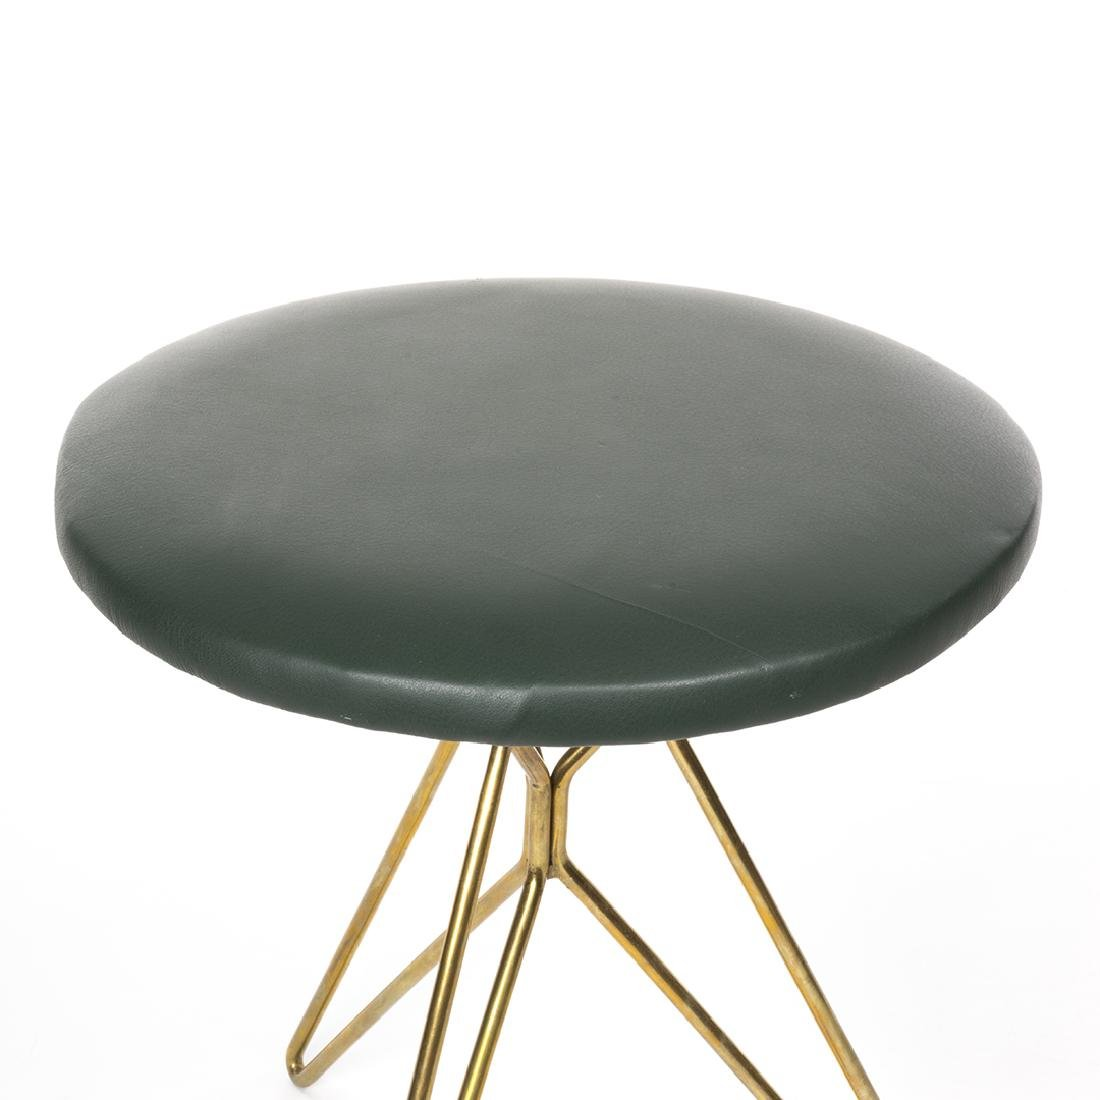 Italian leather and Brass Stools (2) - 3